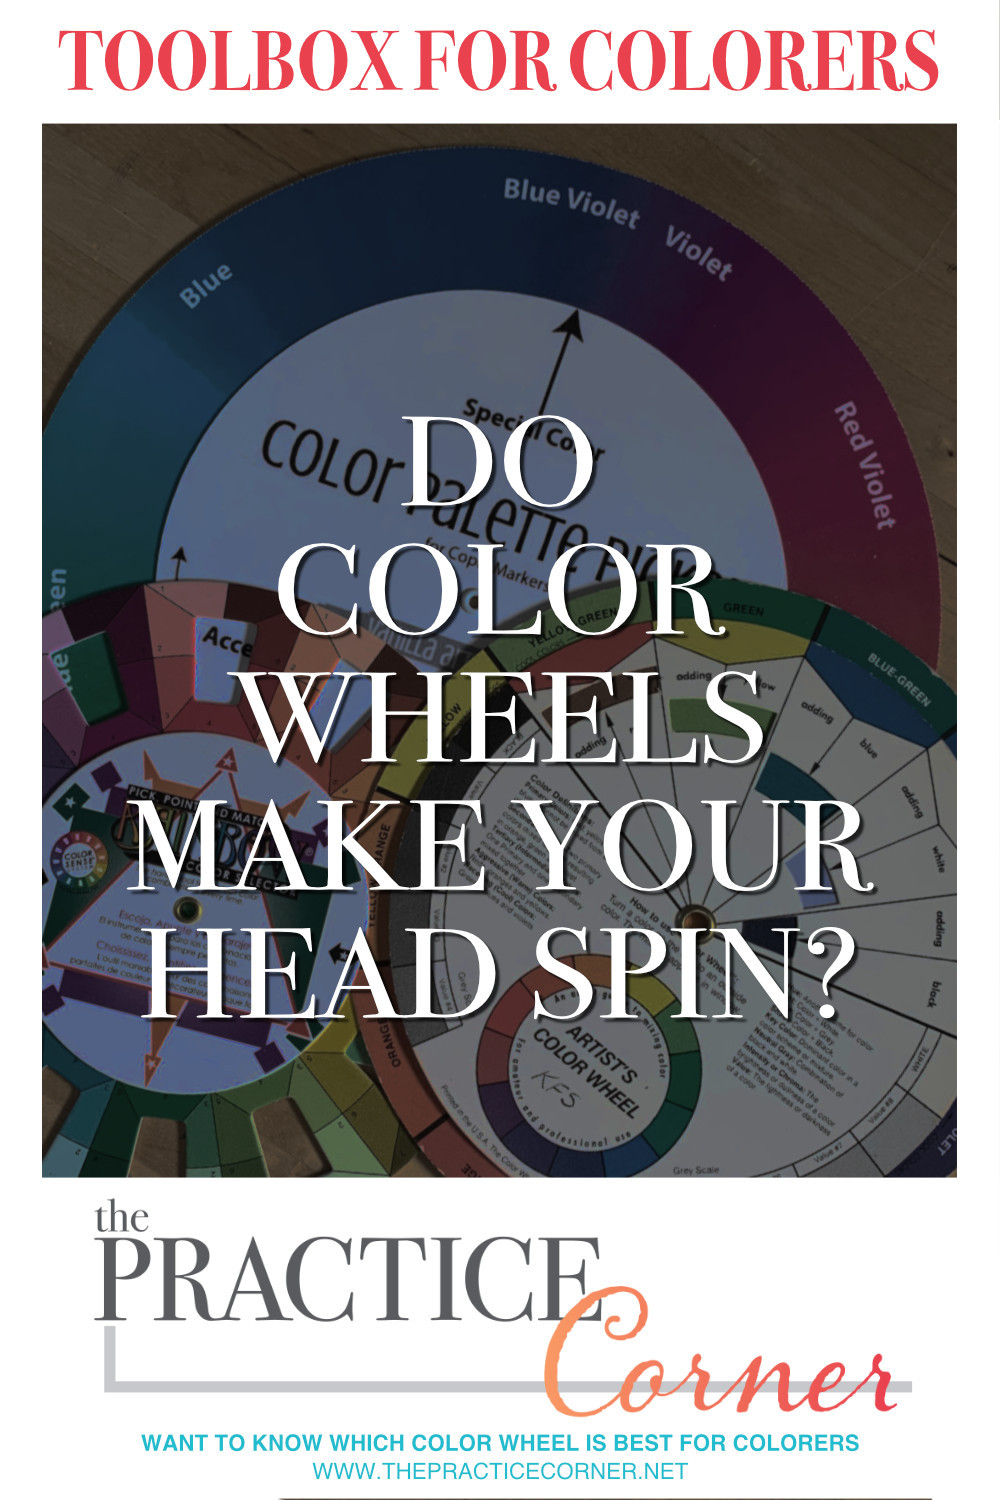 Use a color wheel to select colors that will help you achieve more realism in your coloring.   | How to improve your coloring | #coloredpencil  #copicmarker #copicmarkerpractice  #copiccoloring #coloredpencilcoloring #thepracticecorner